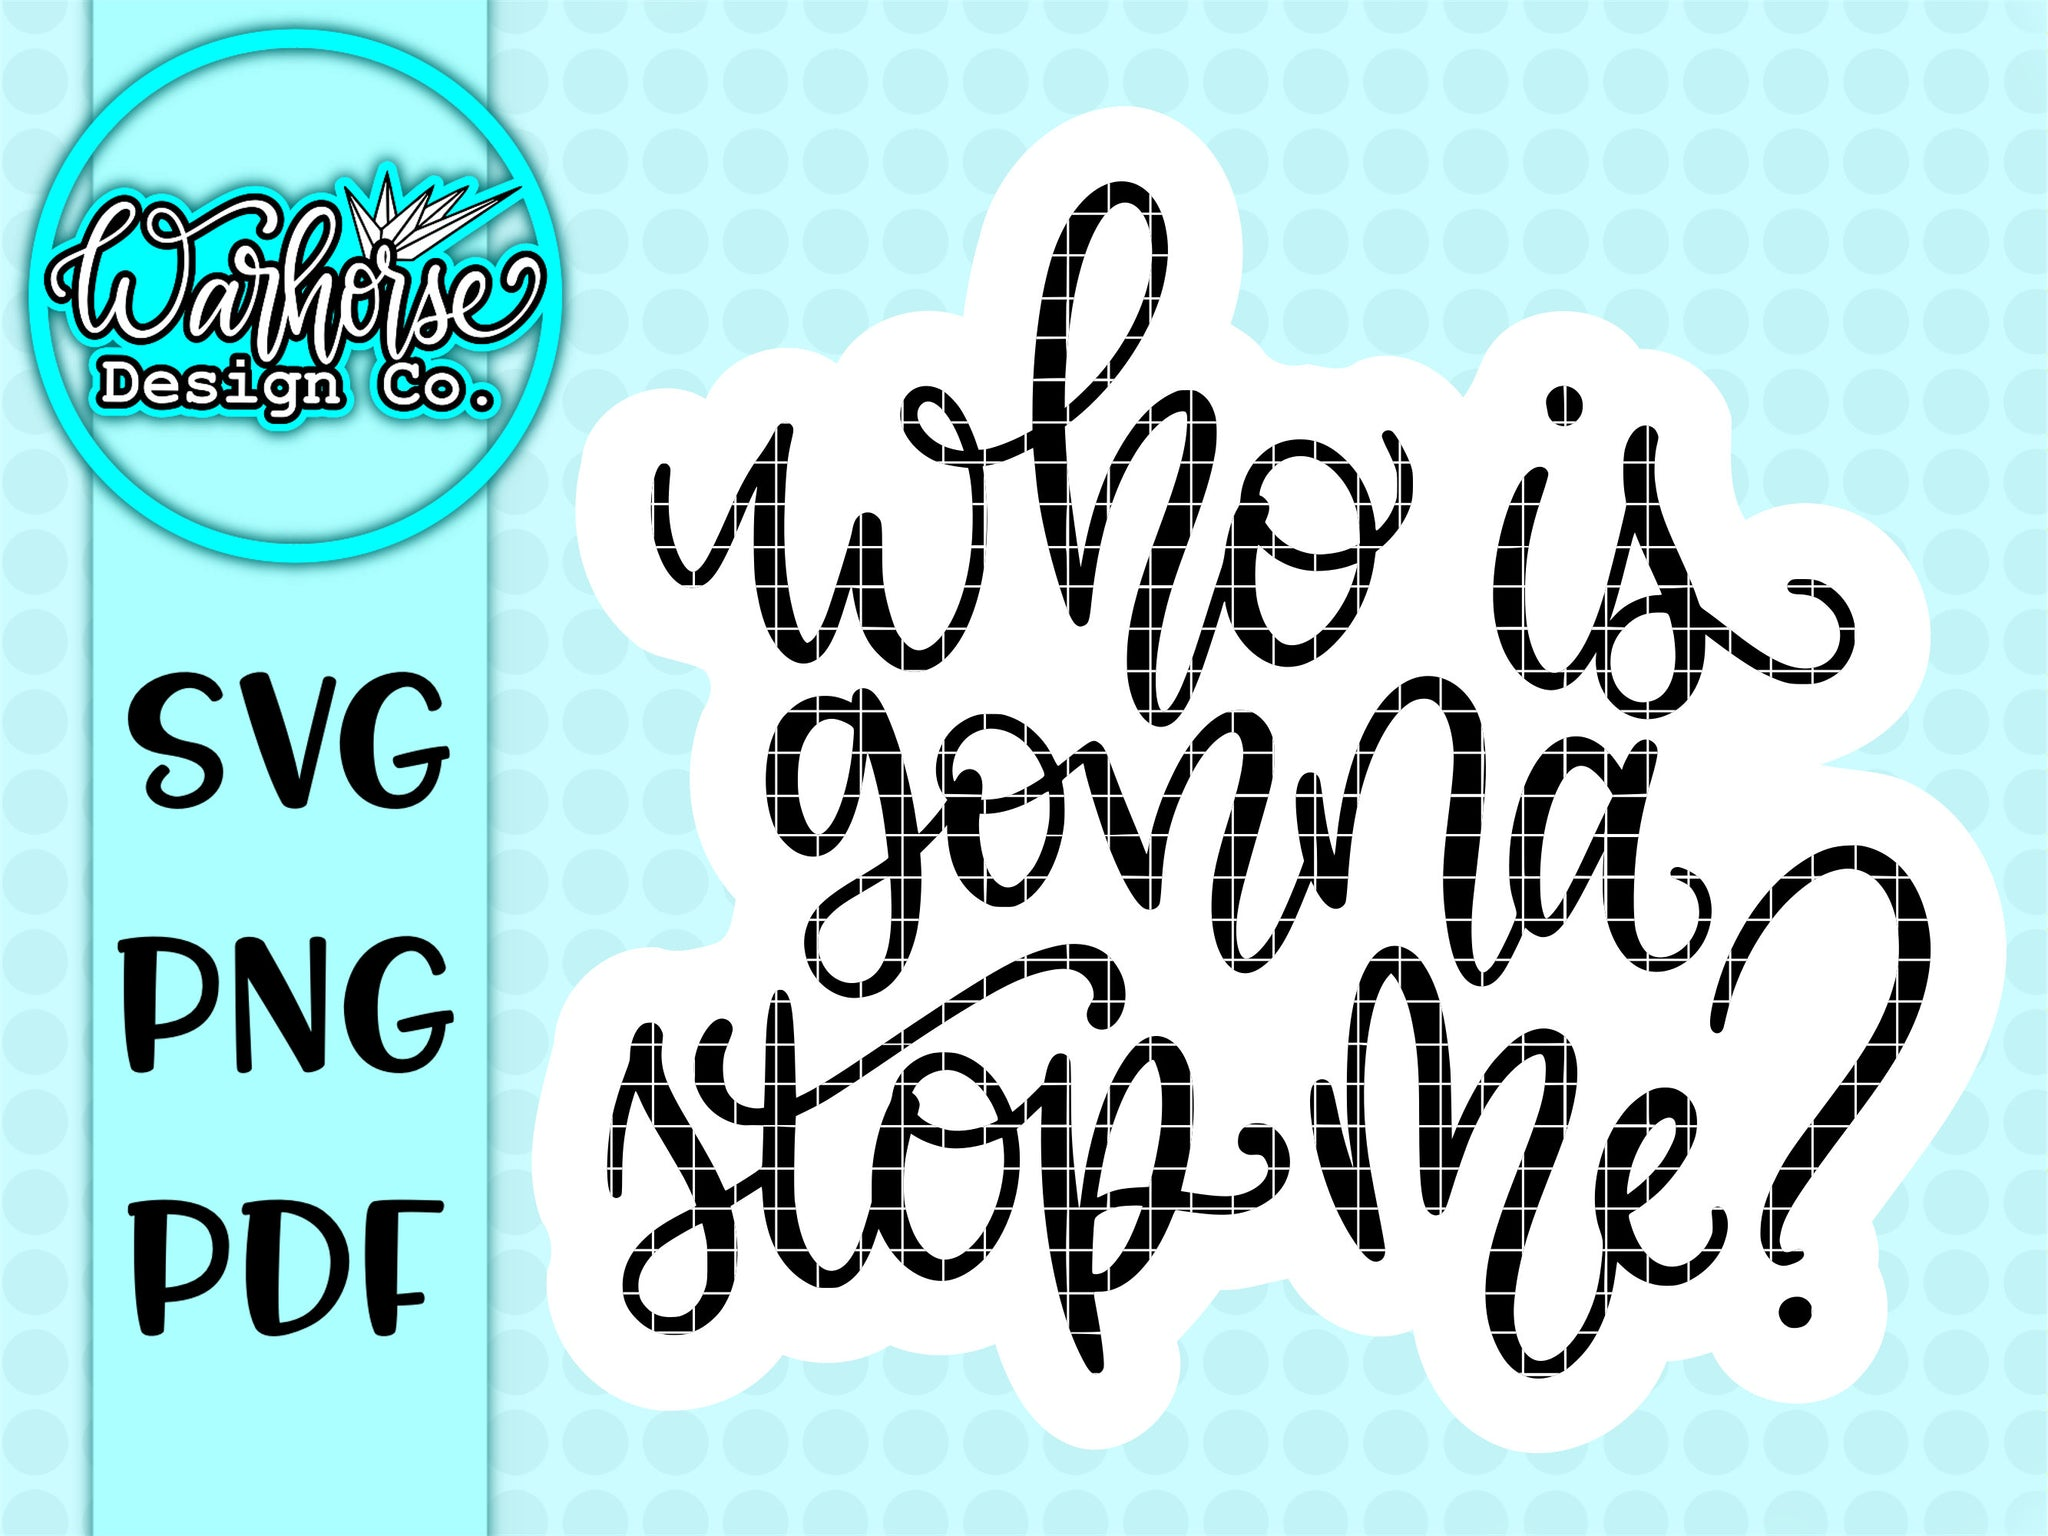 Who is gonna stop me SVG PNG PDF